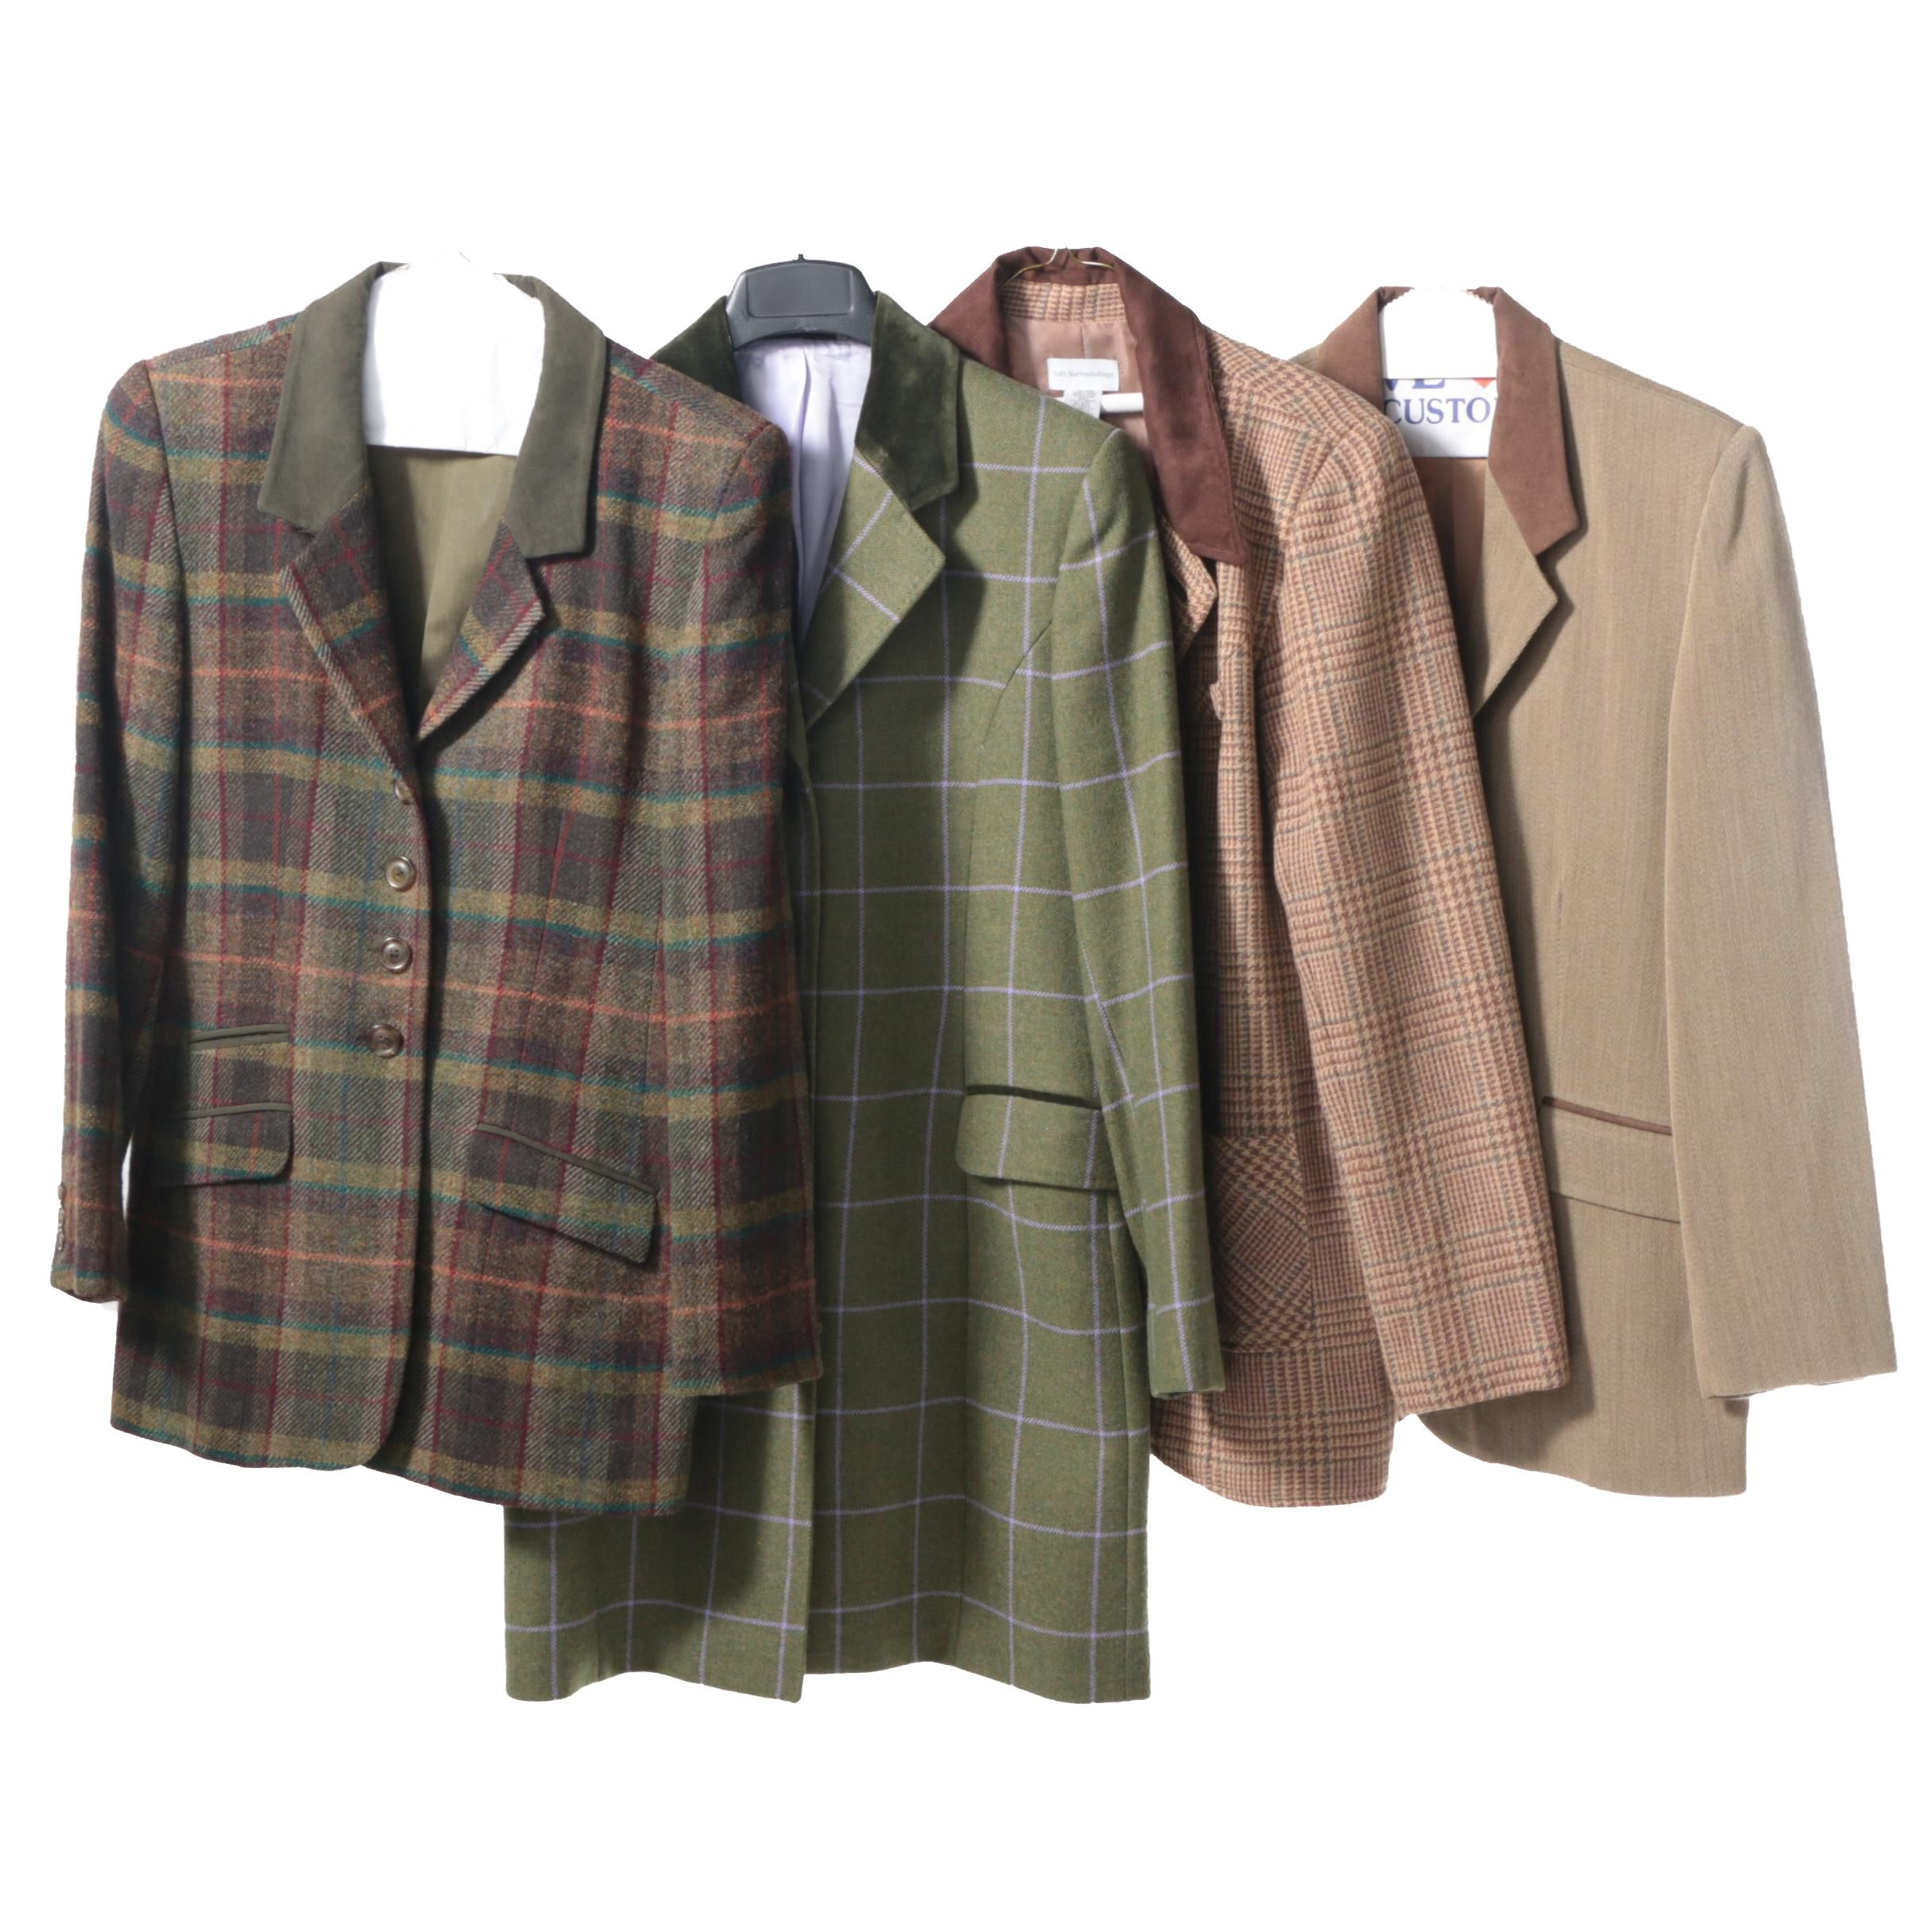 Women's Tweed Jackets Including Country Classics